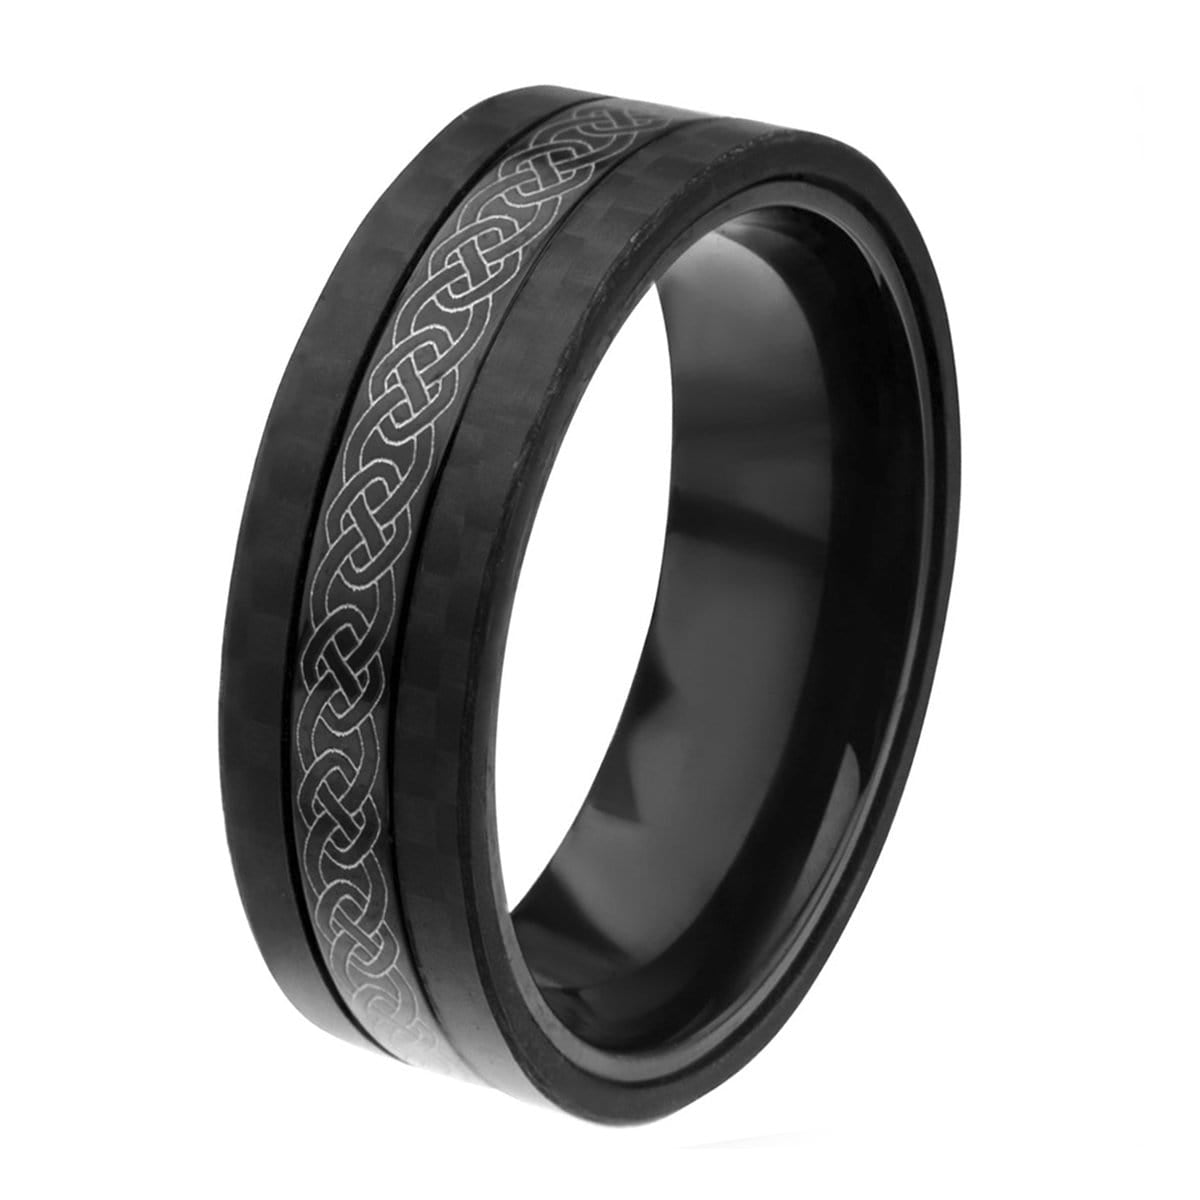 Black & Silver Stainless Steel Celtic Band with Carbon Fiber Detail Rings